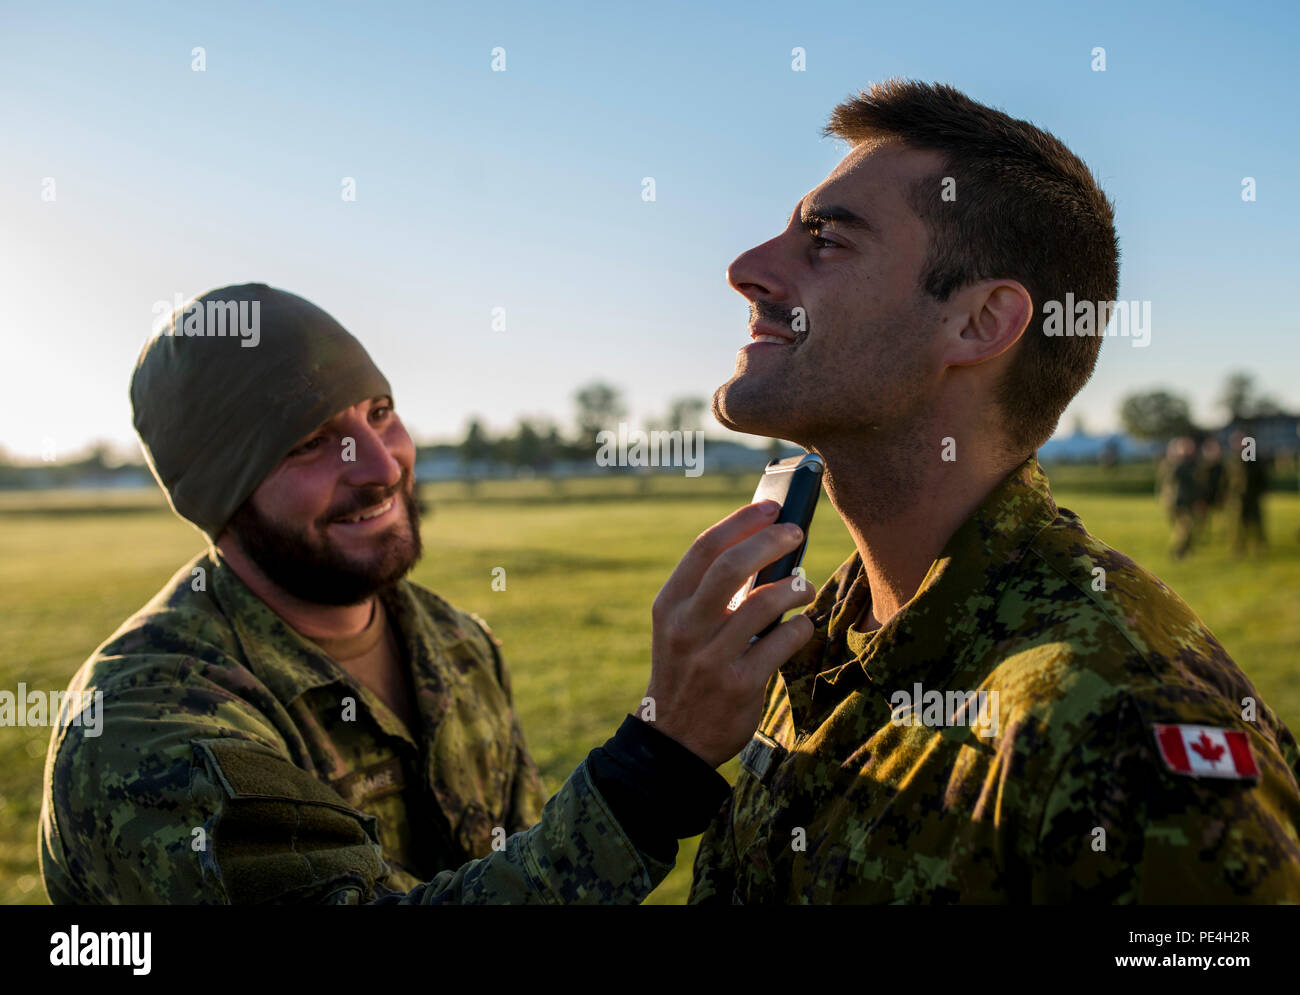 Images - Importance of shaving in the military